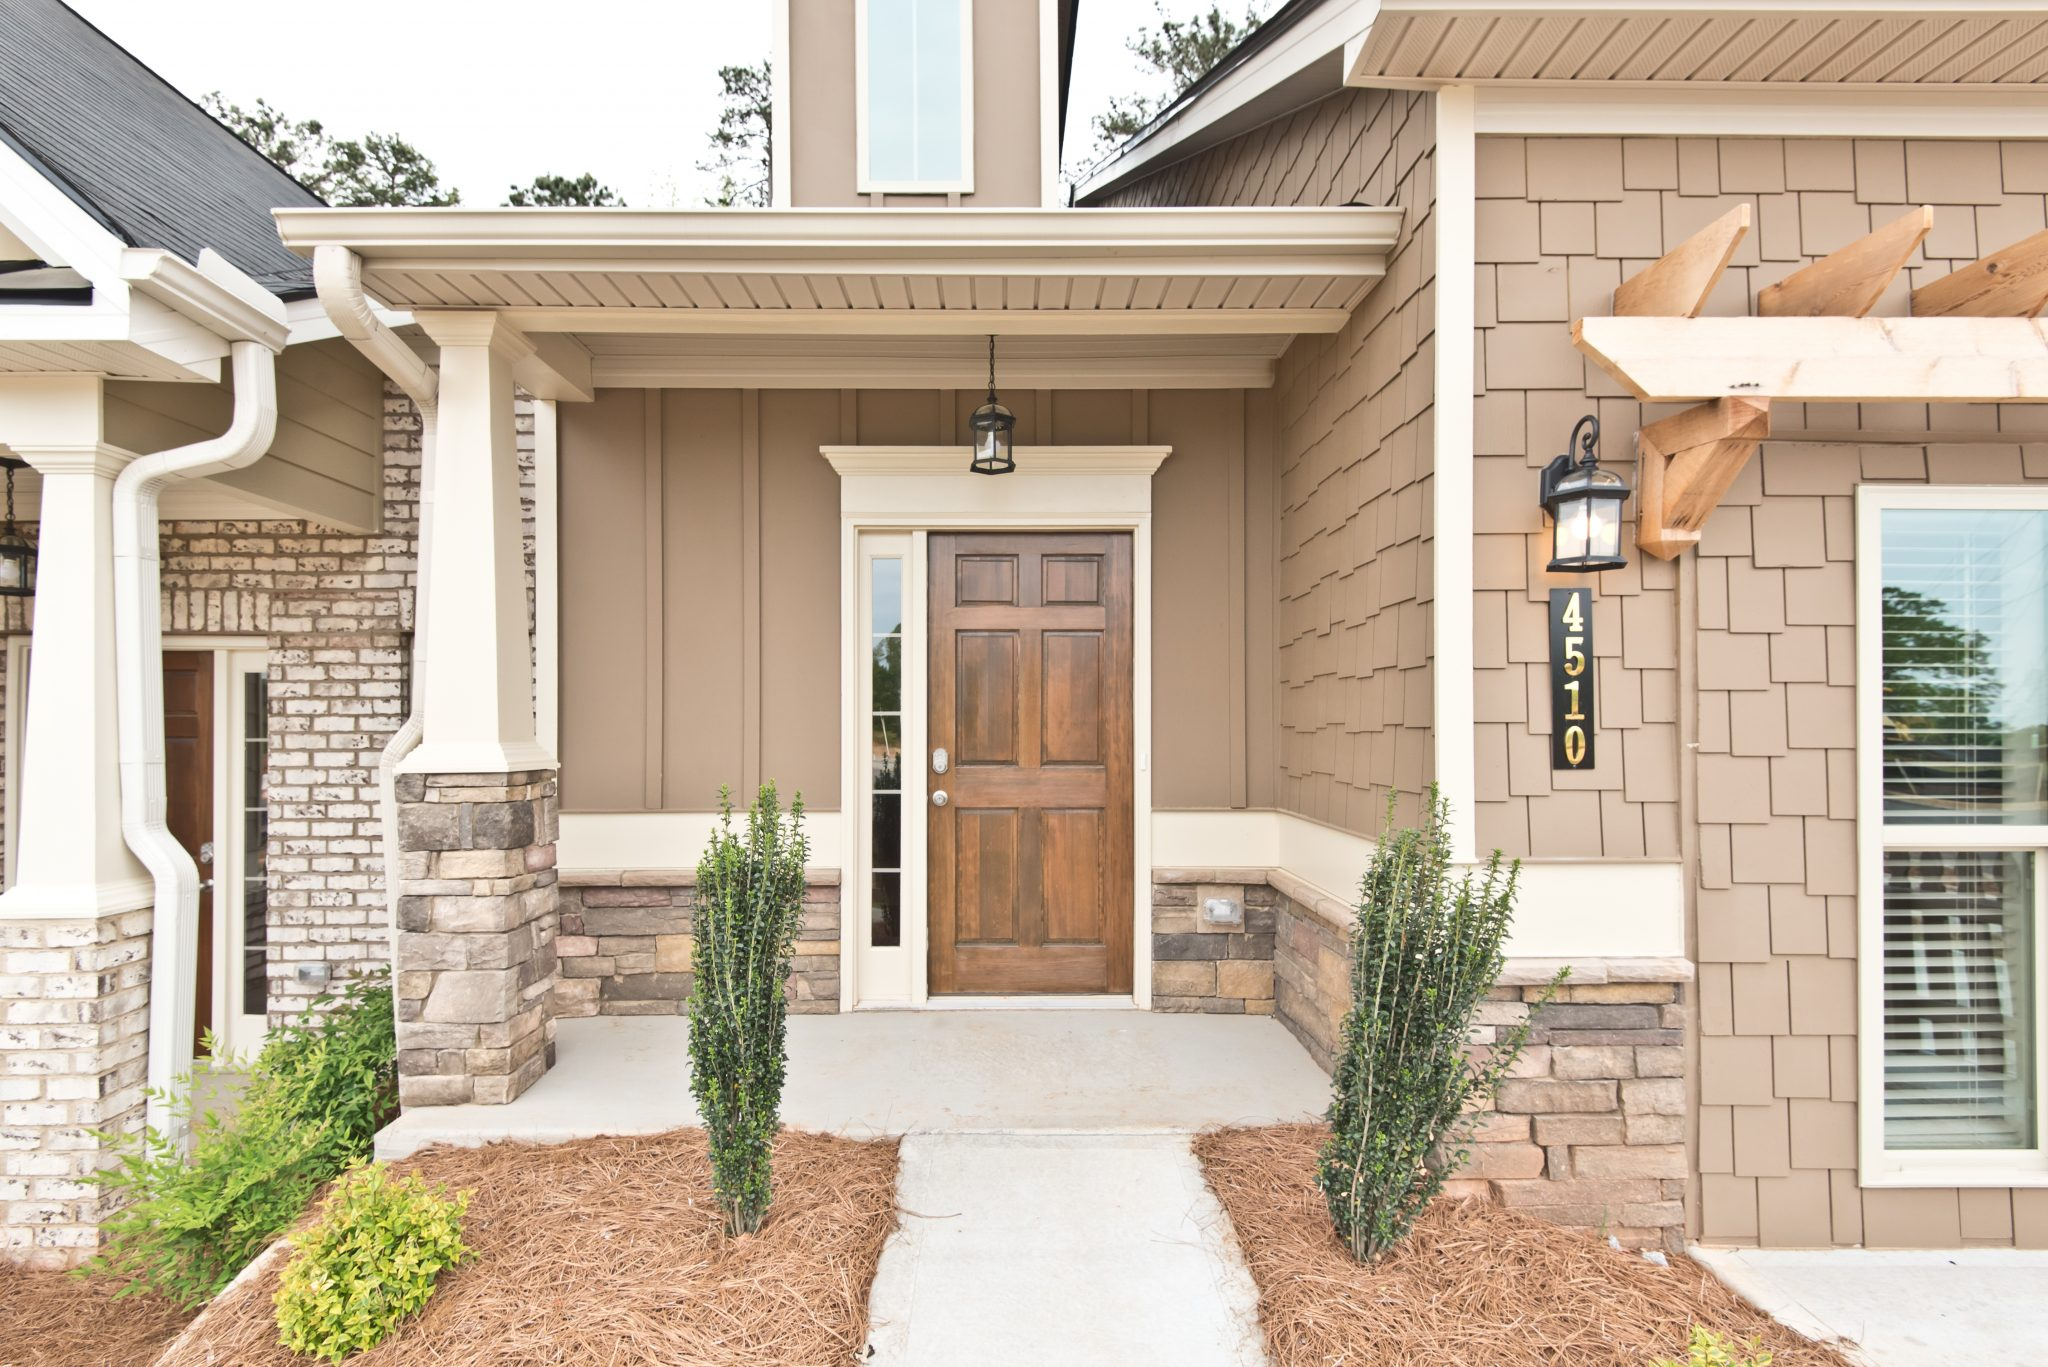 New home communities for every new home buyer - Villas at Hickory Grove entryway